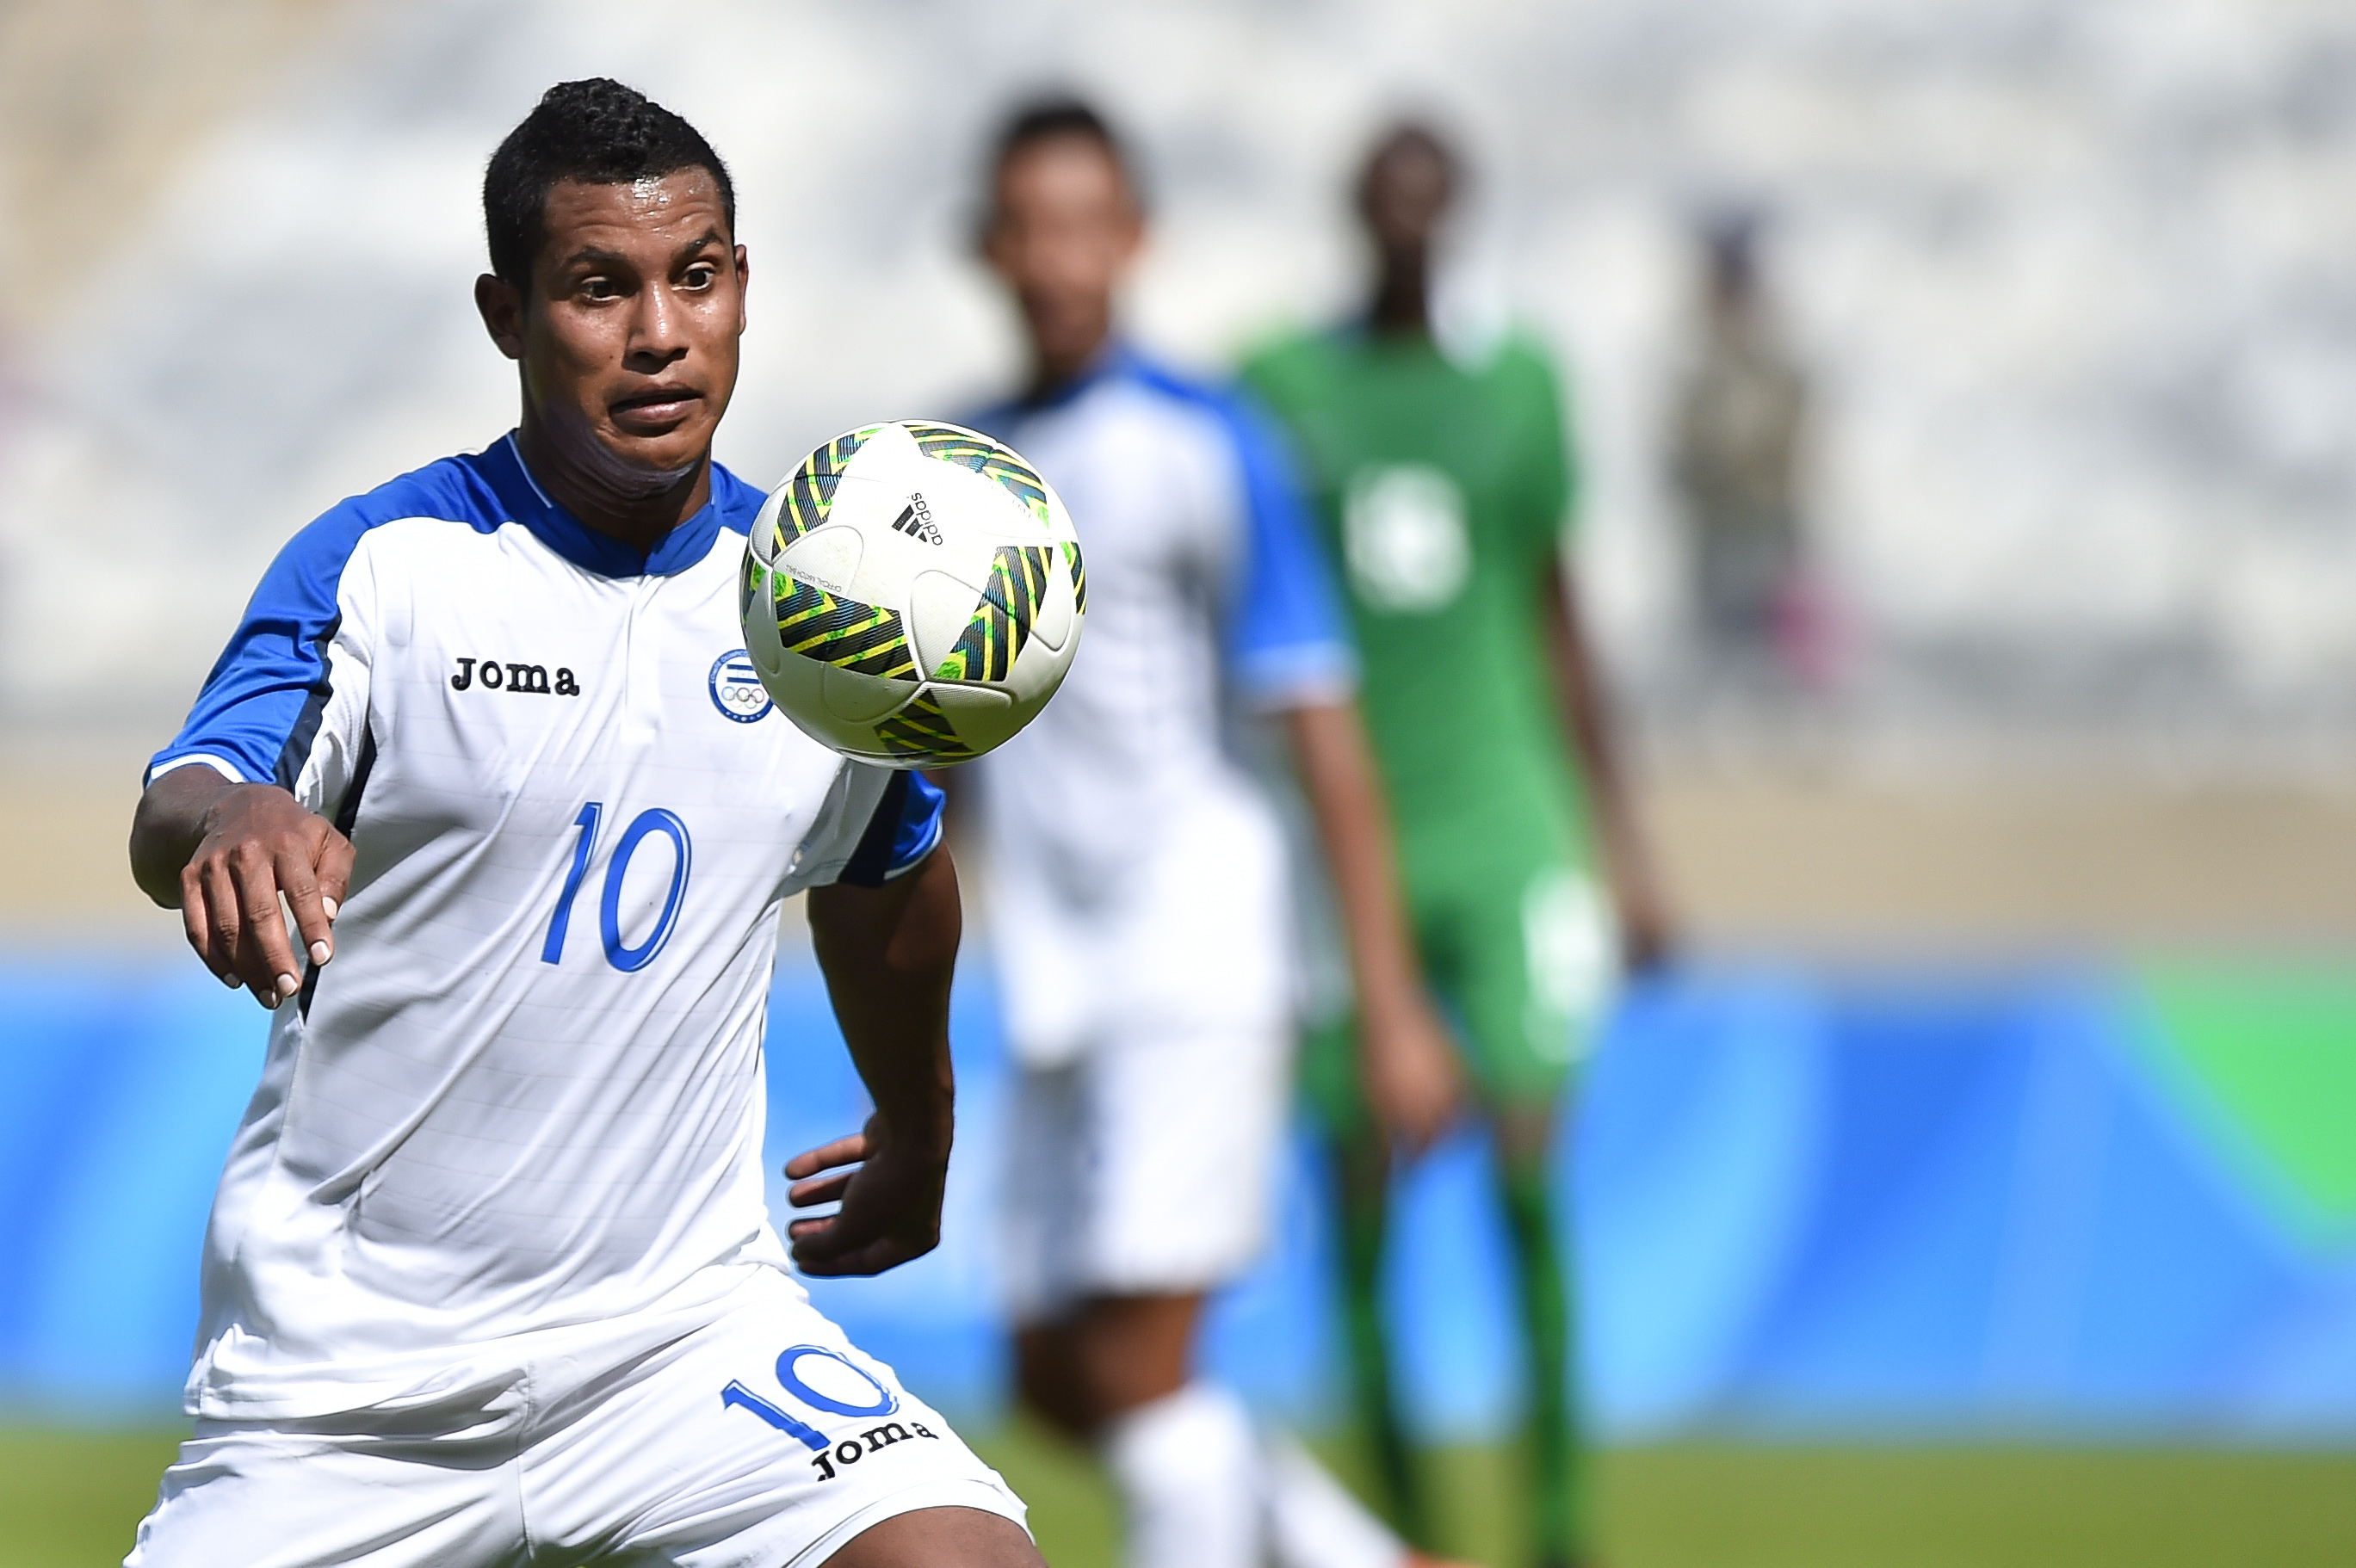 Honduras vs. Panama 2016: Start time, live stream, TV schedule, and 3 things to know